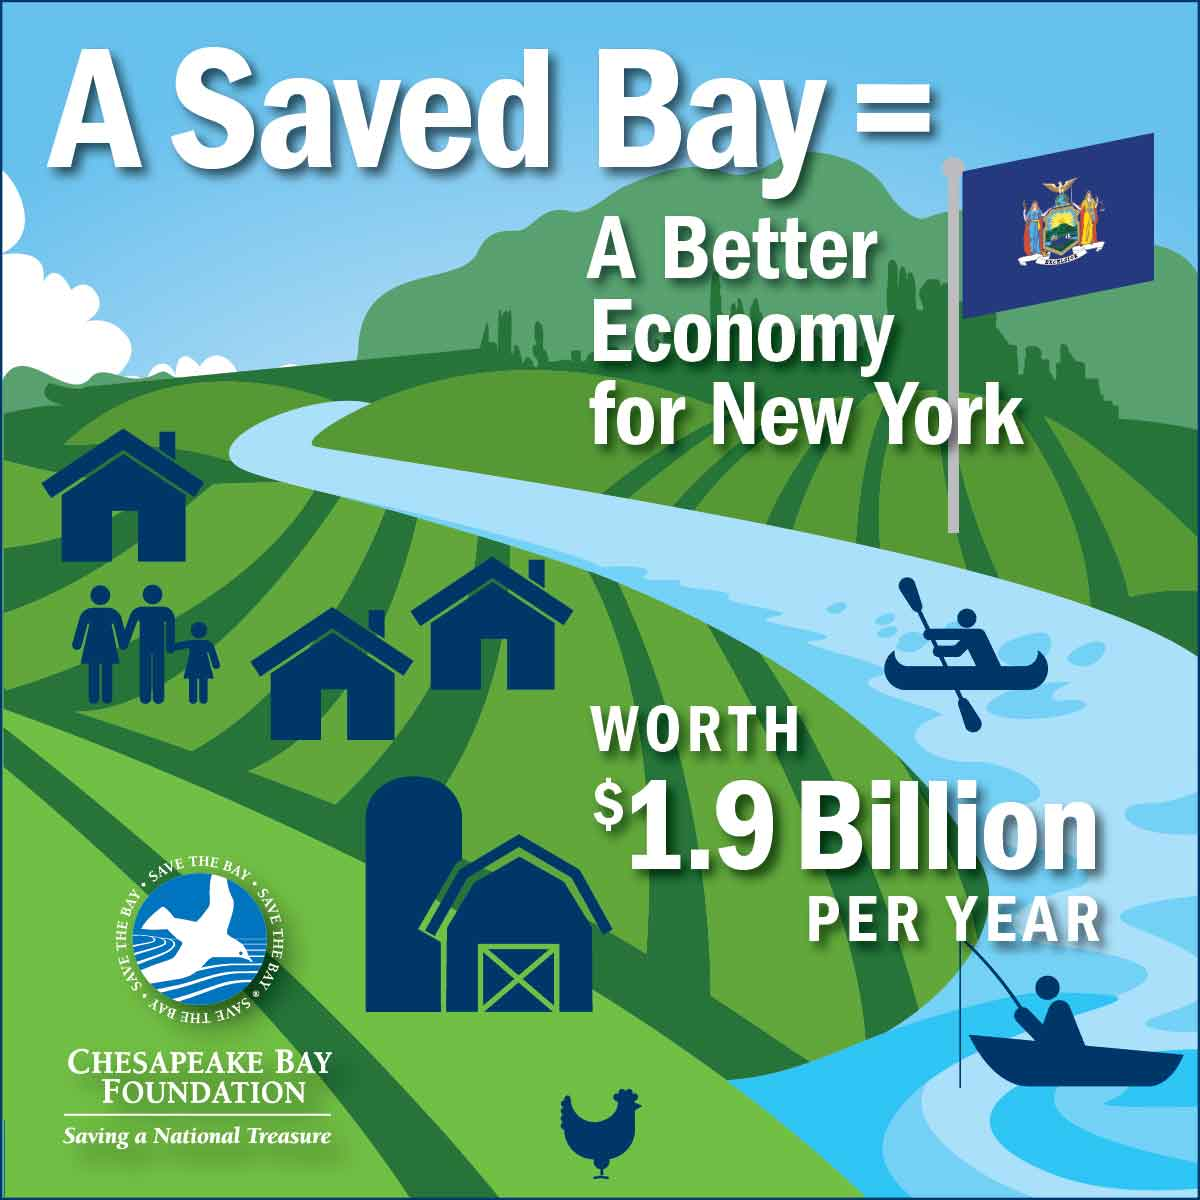 A Saved Bay = A Better Economy for New York worth $1.9 Billion per year